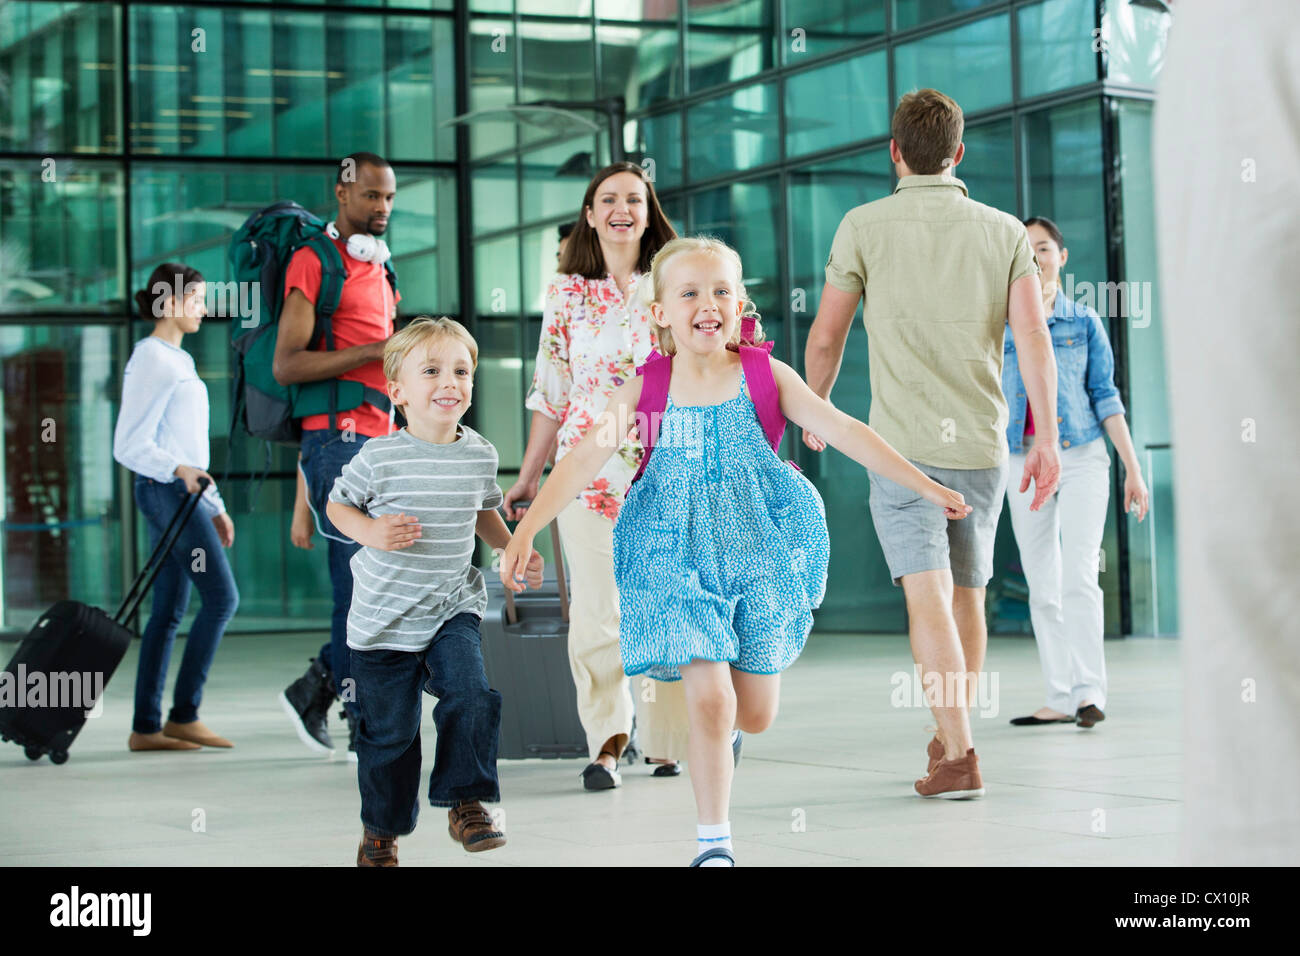 Excited children running on airport concourse - Stock Image